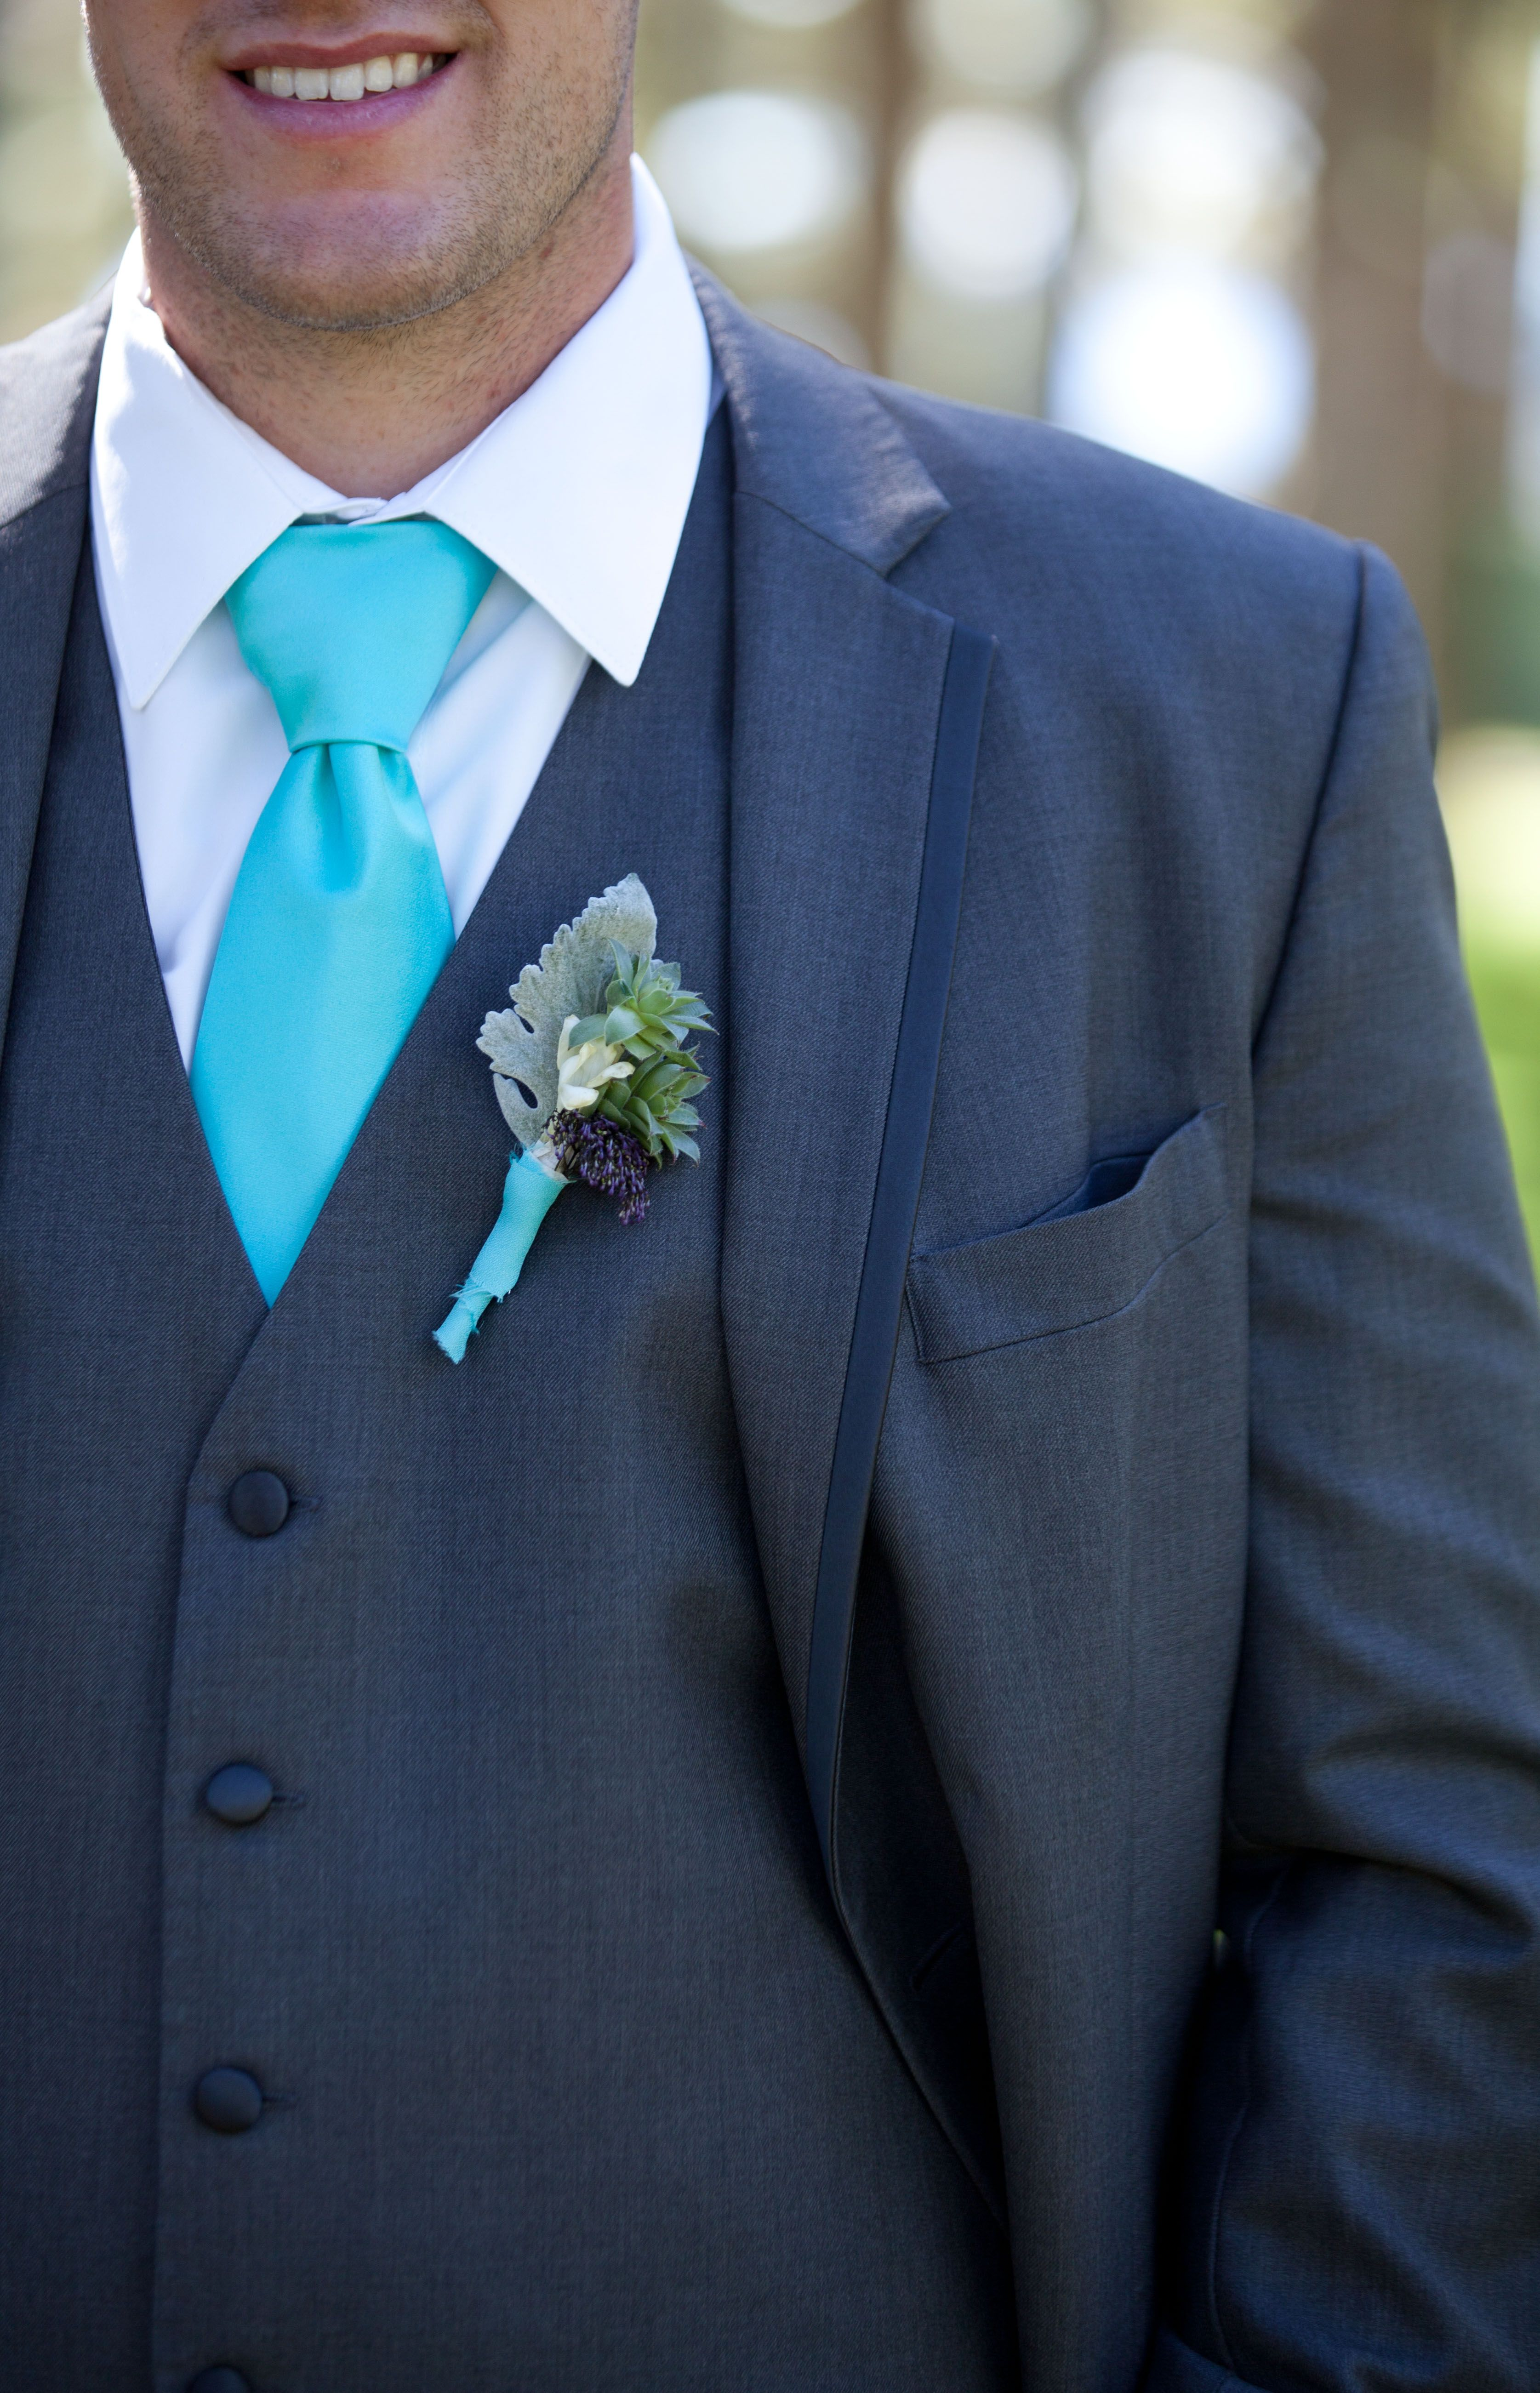 Summer in Tahoe color palette, charcoal grey tuxedo and a turquoise tie…